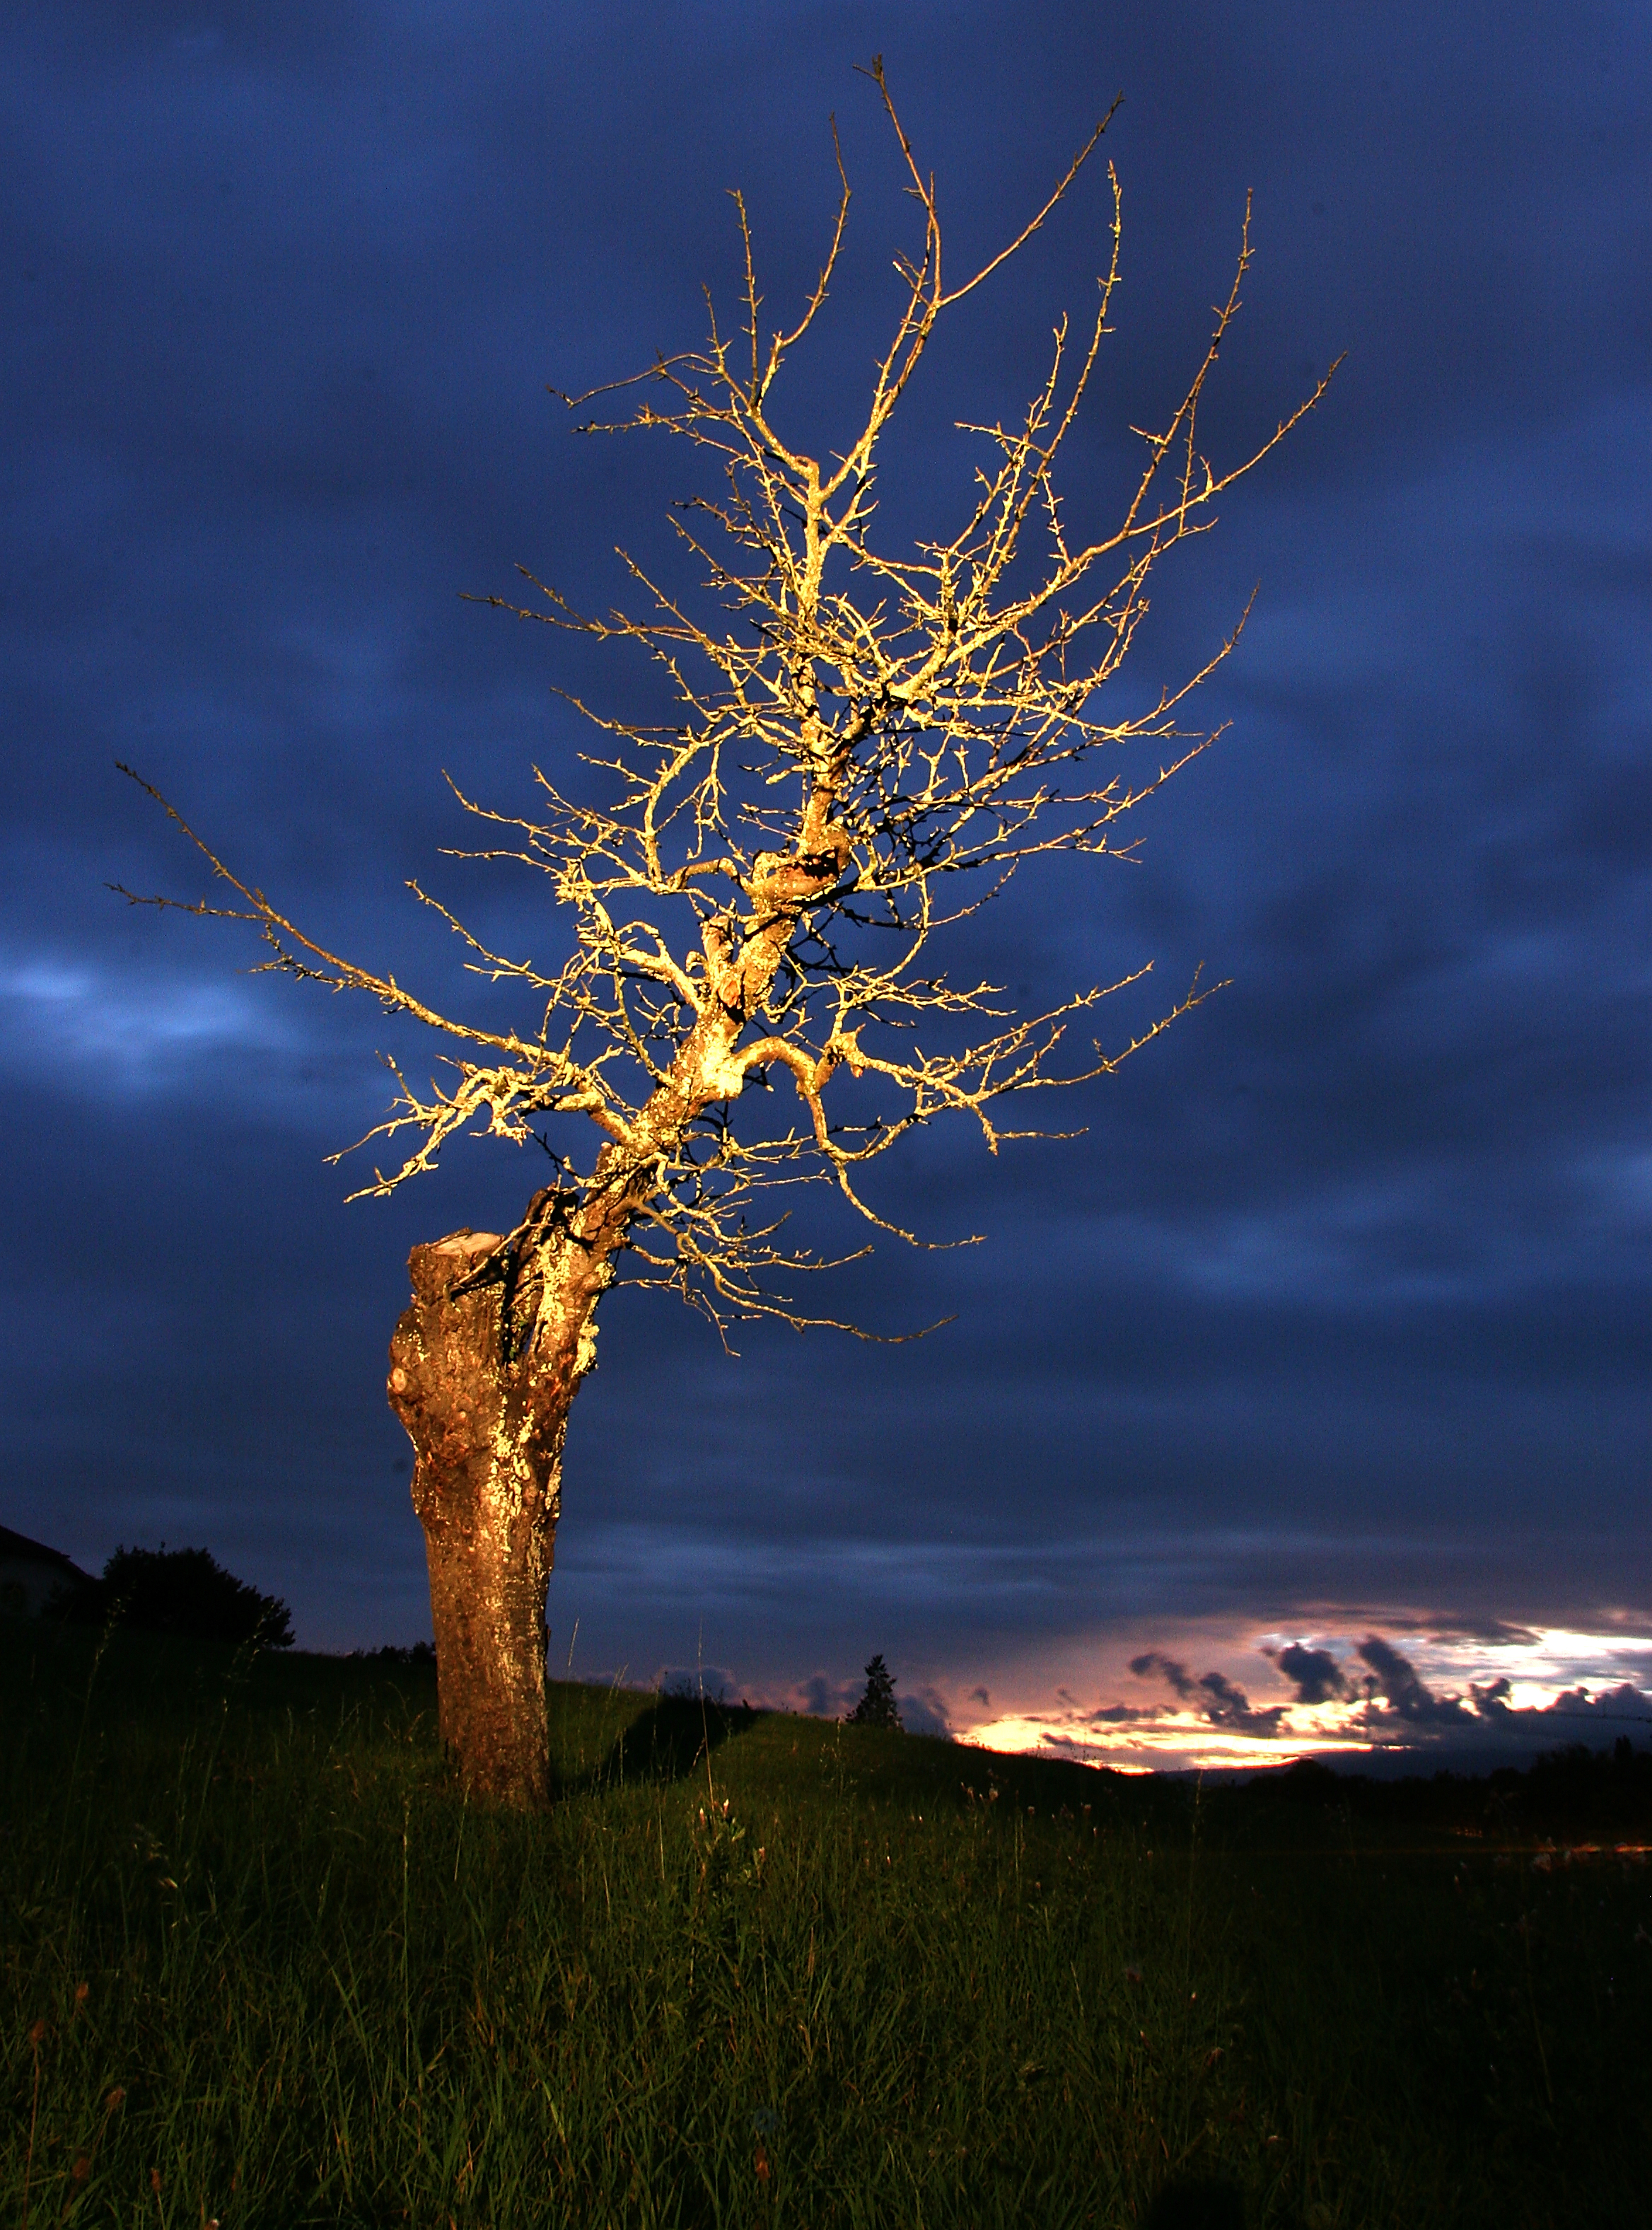 Tree, Vessy Switzerland.jpg - Vessy tree